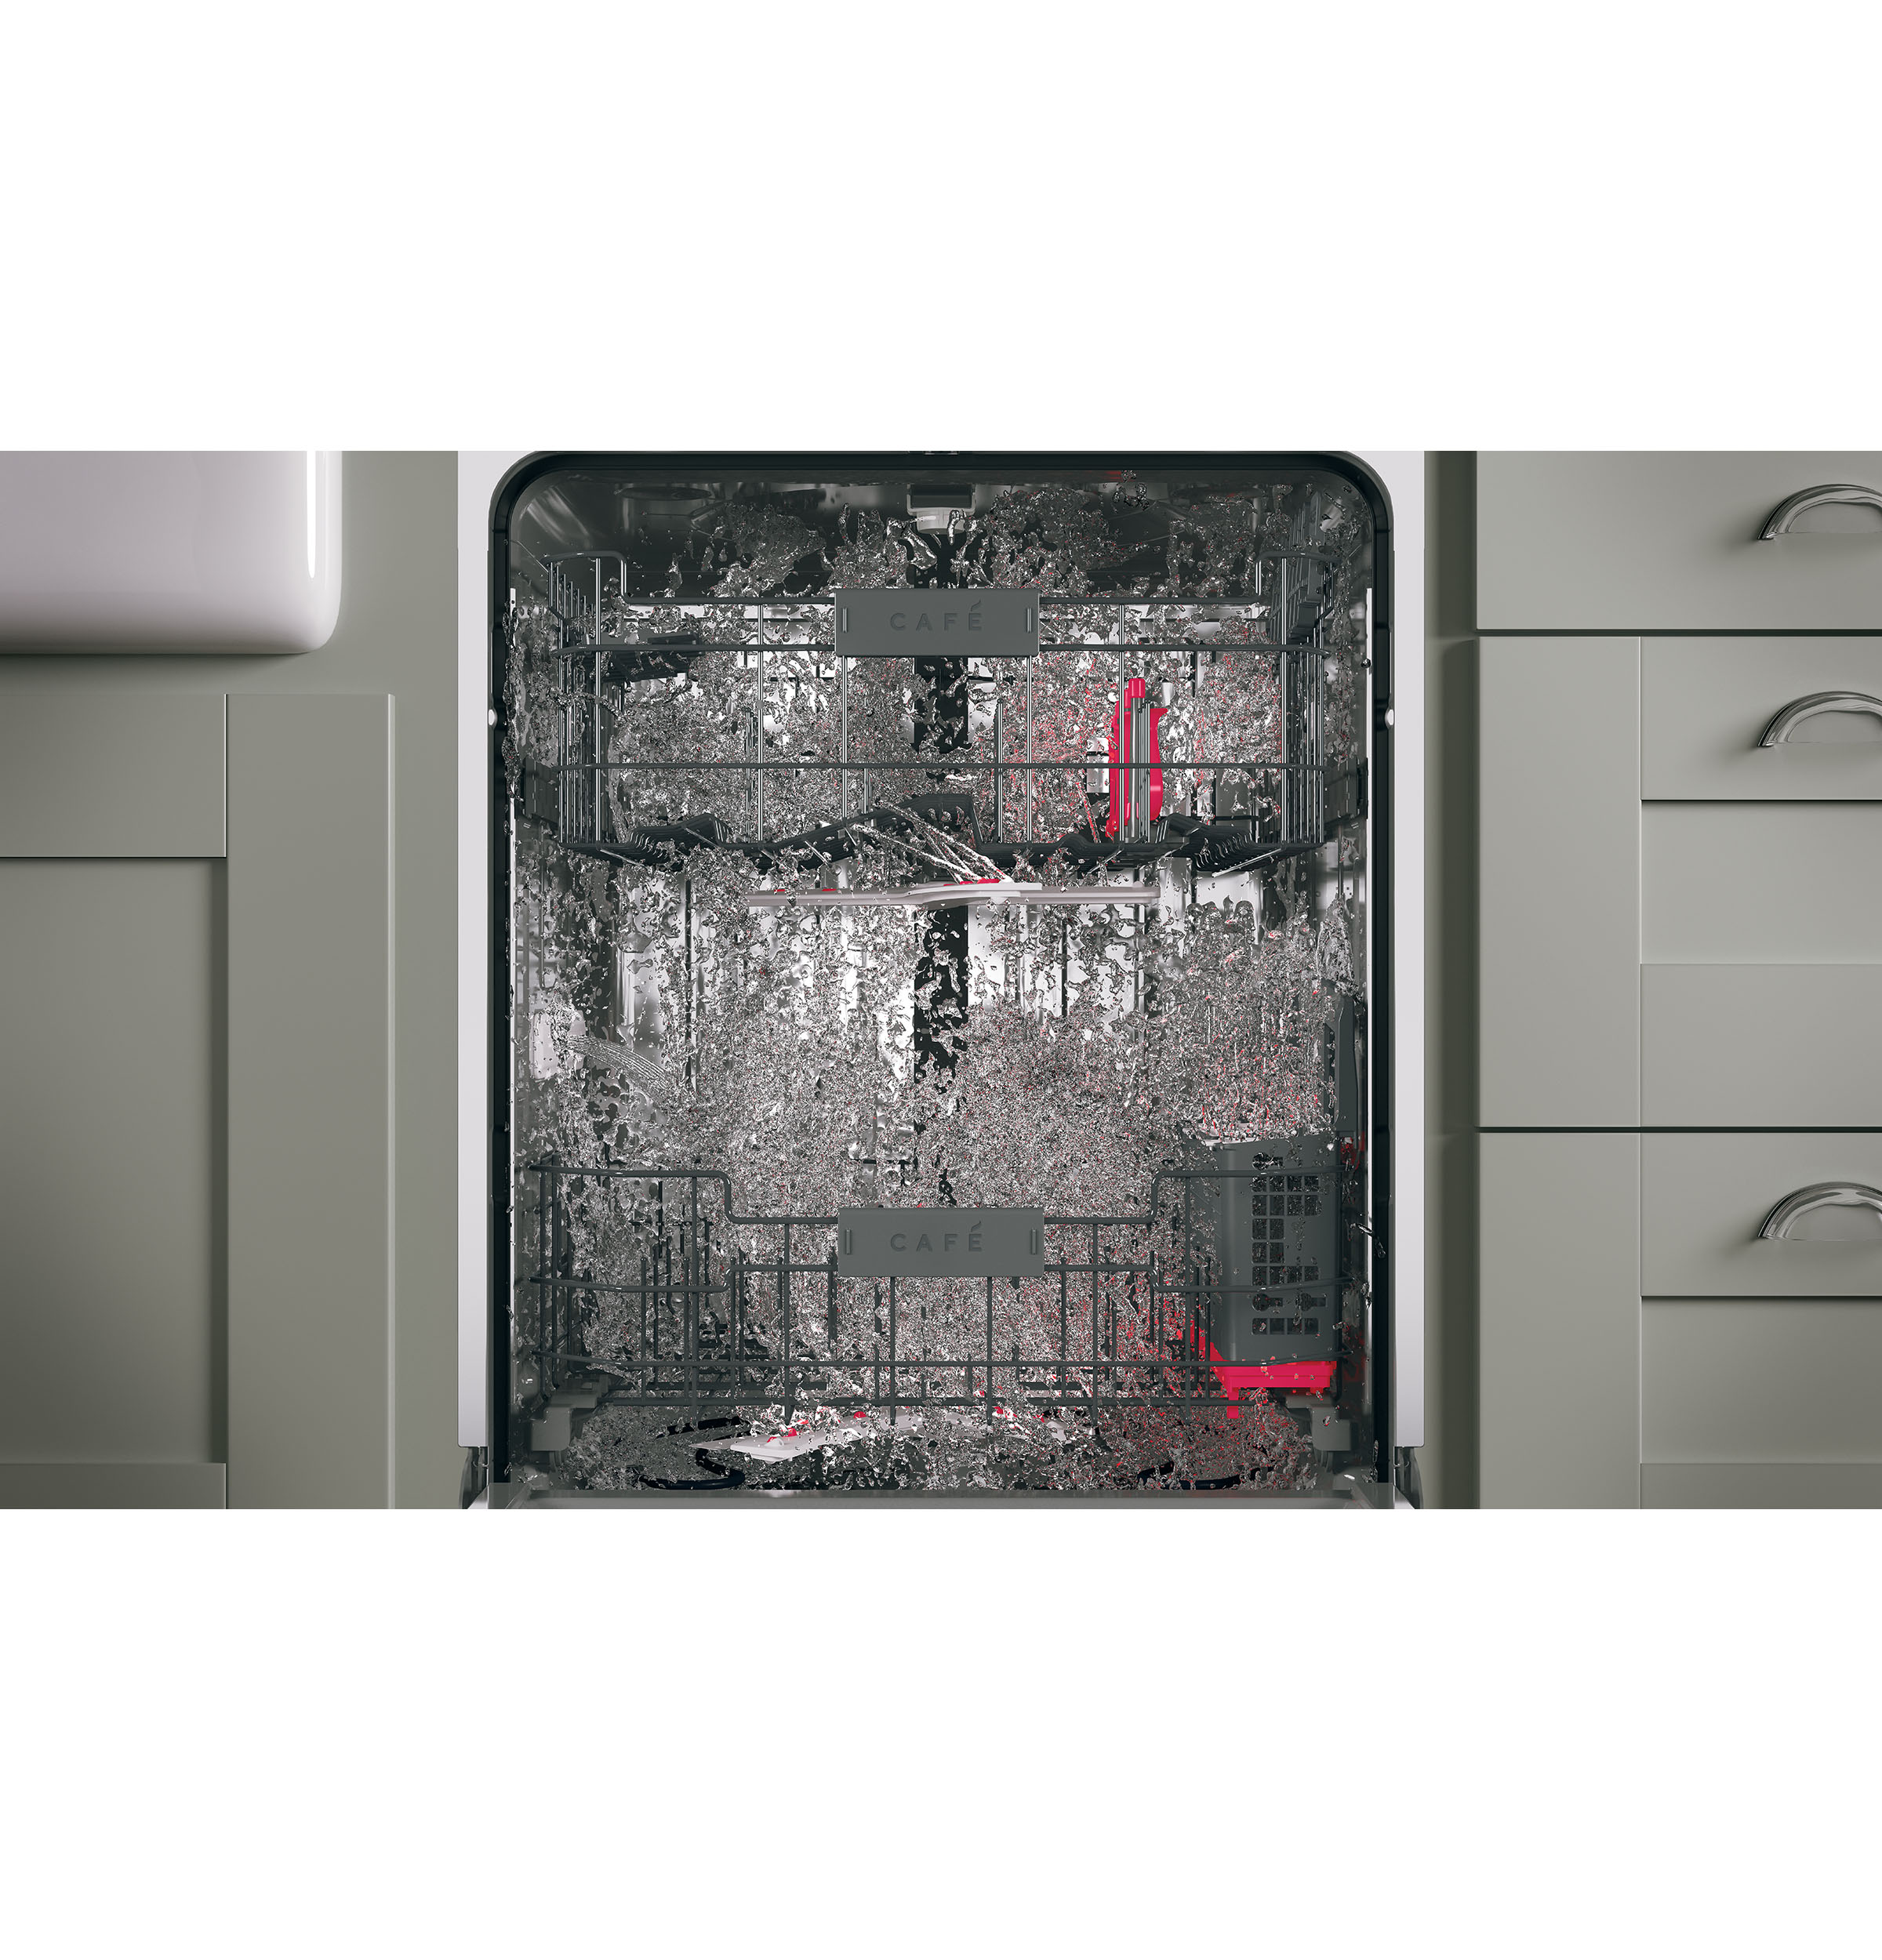 Model: CDT866P3MD1 | Cafe Café™ Stainless Interior Built-In Dishwasher with Hidden Controls